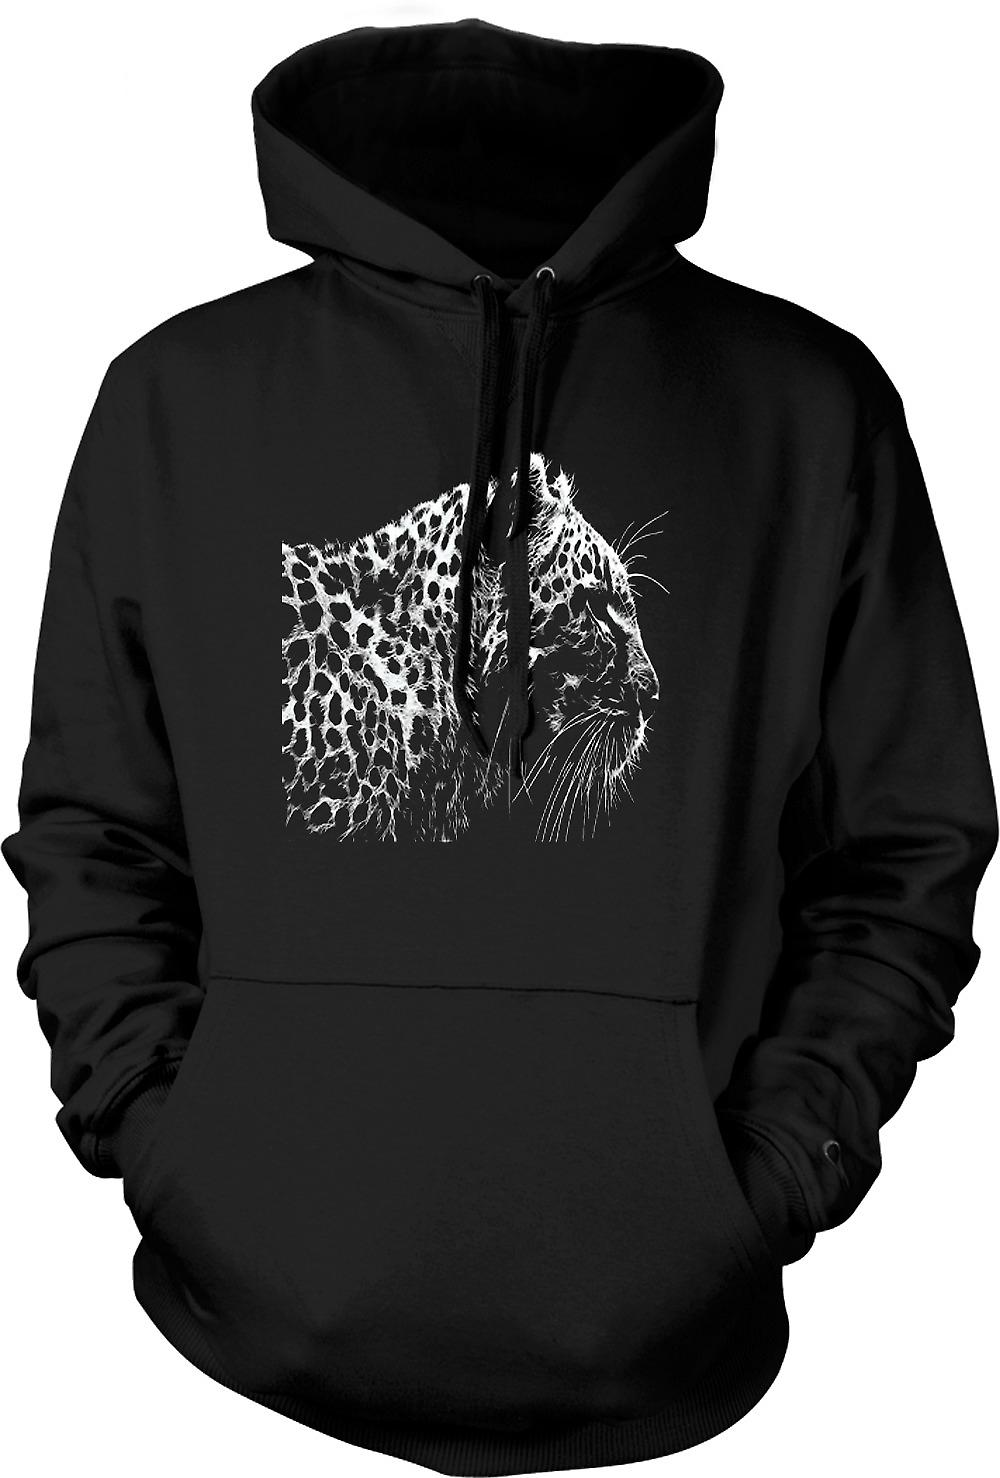 Mens Hoodie - Leopard  And White Photo